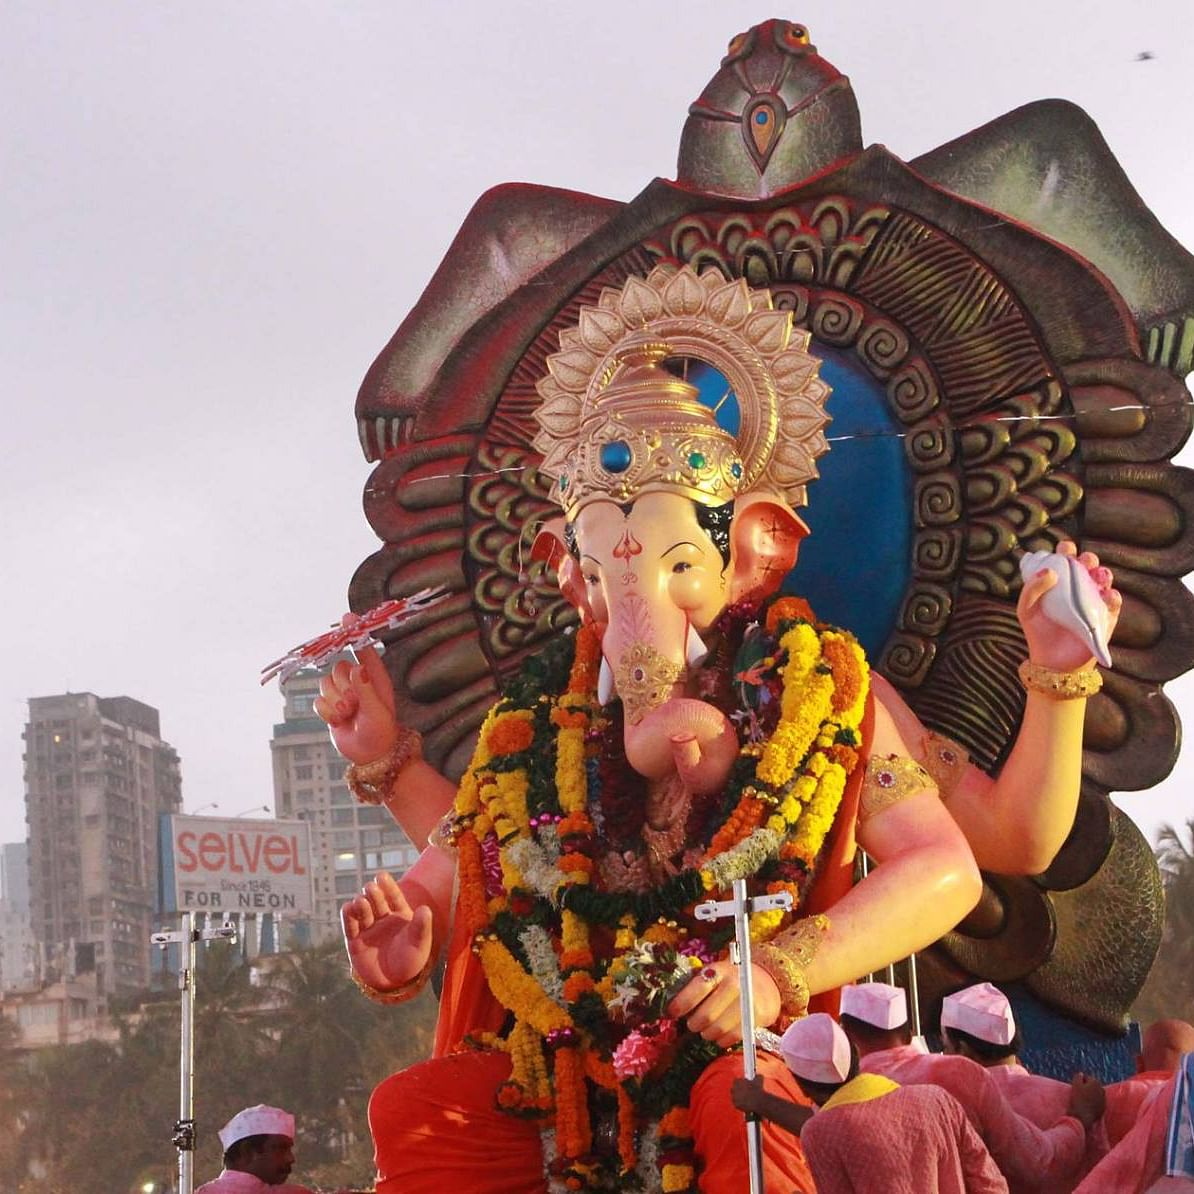 Missing Ganpati darshan at Mumbai's biggest pandals? Here's how you can skip queues and watch safely from home